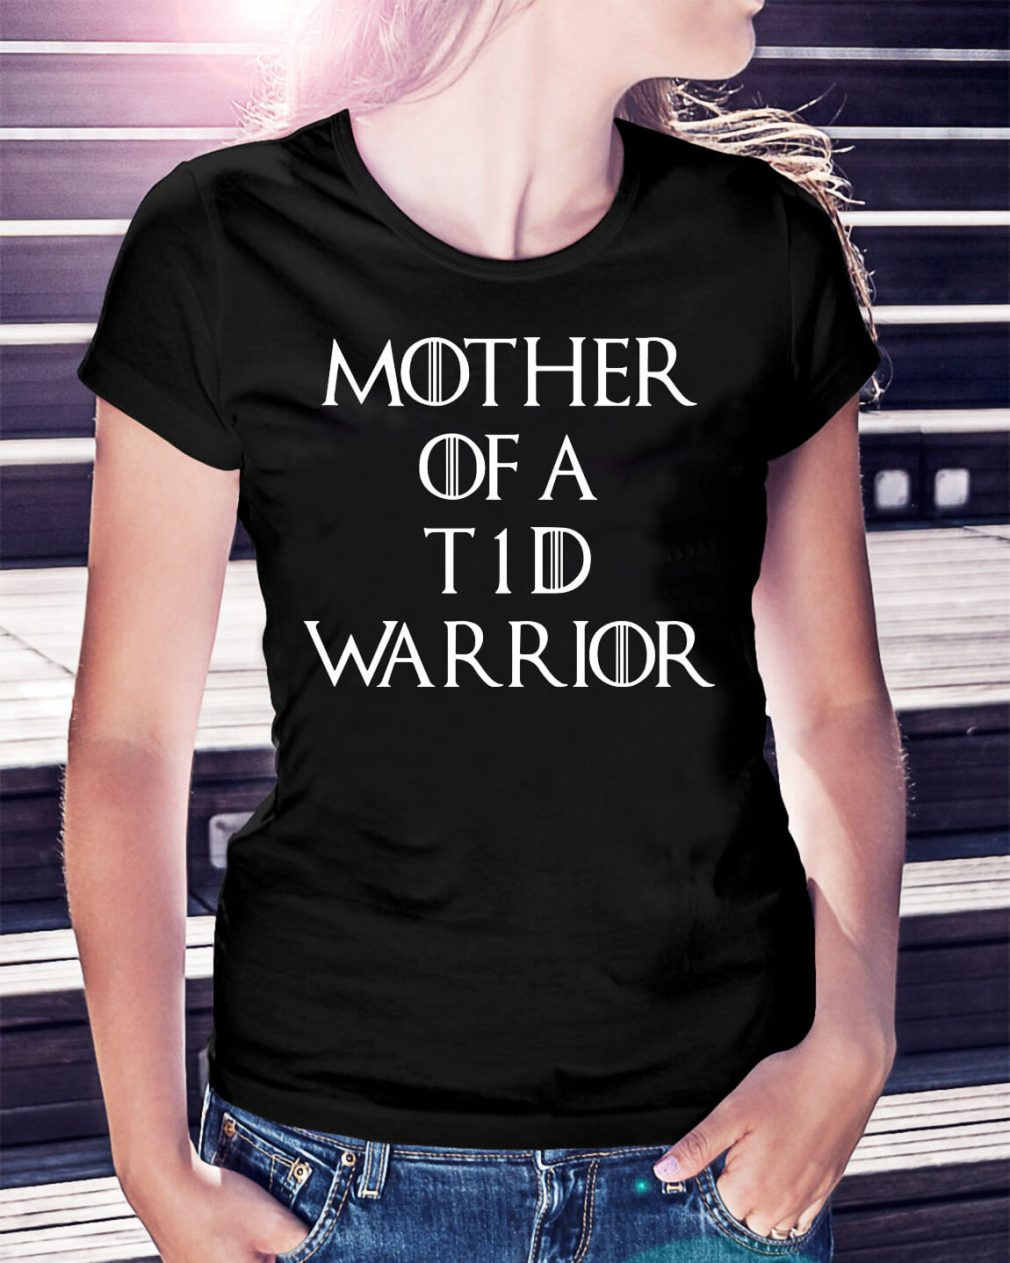 Game of Thrones mother of a t1d warrior shirt